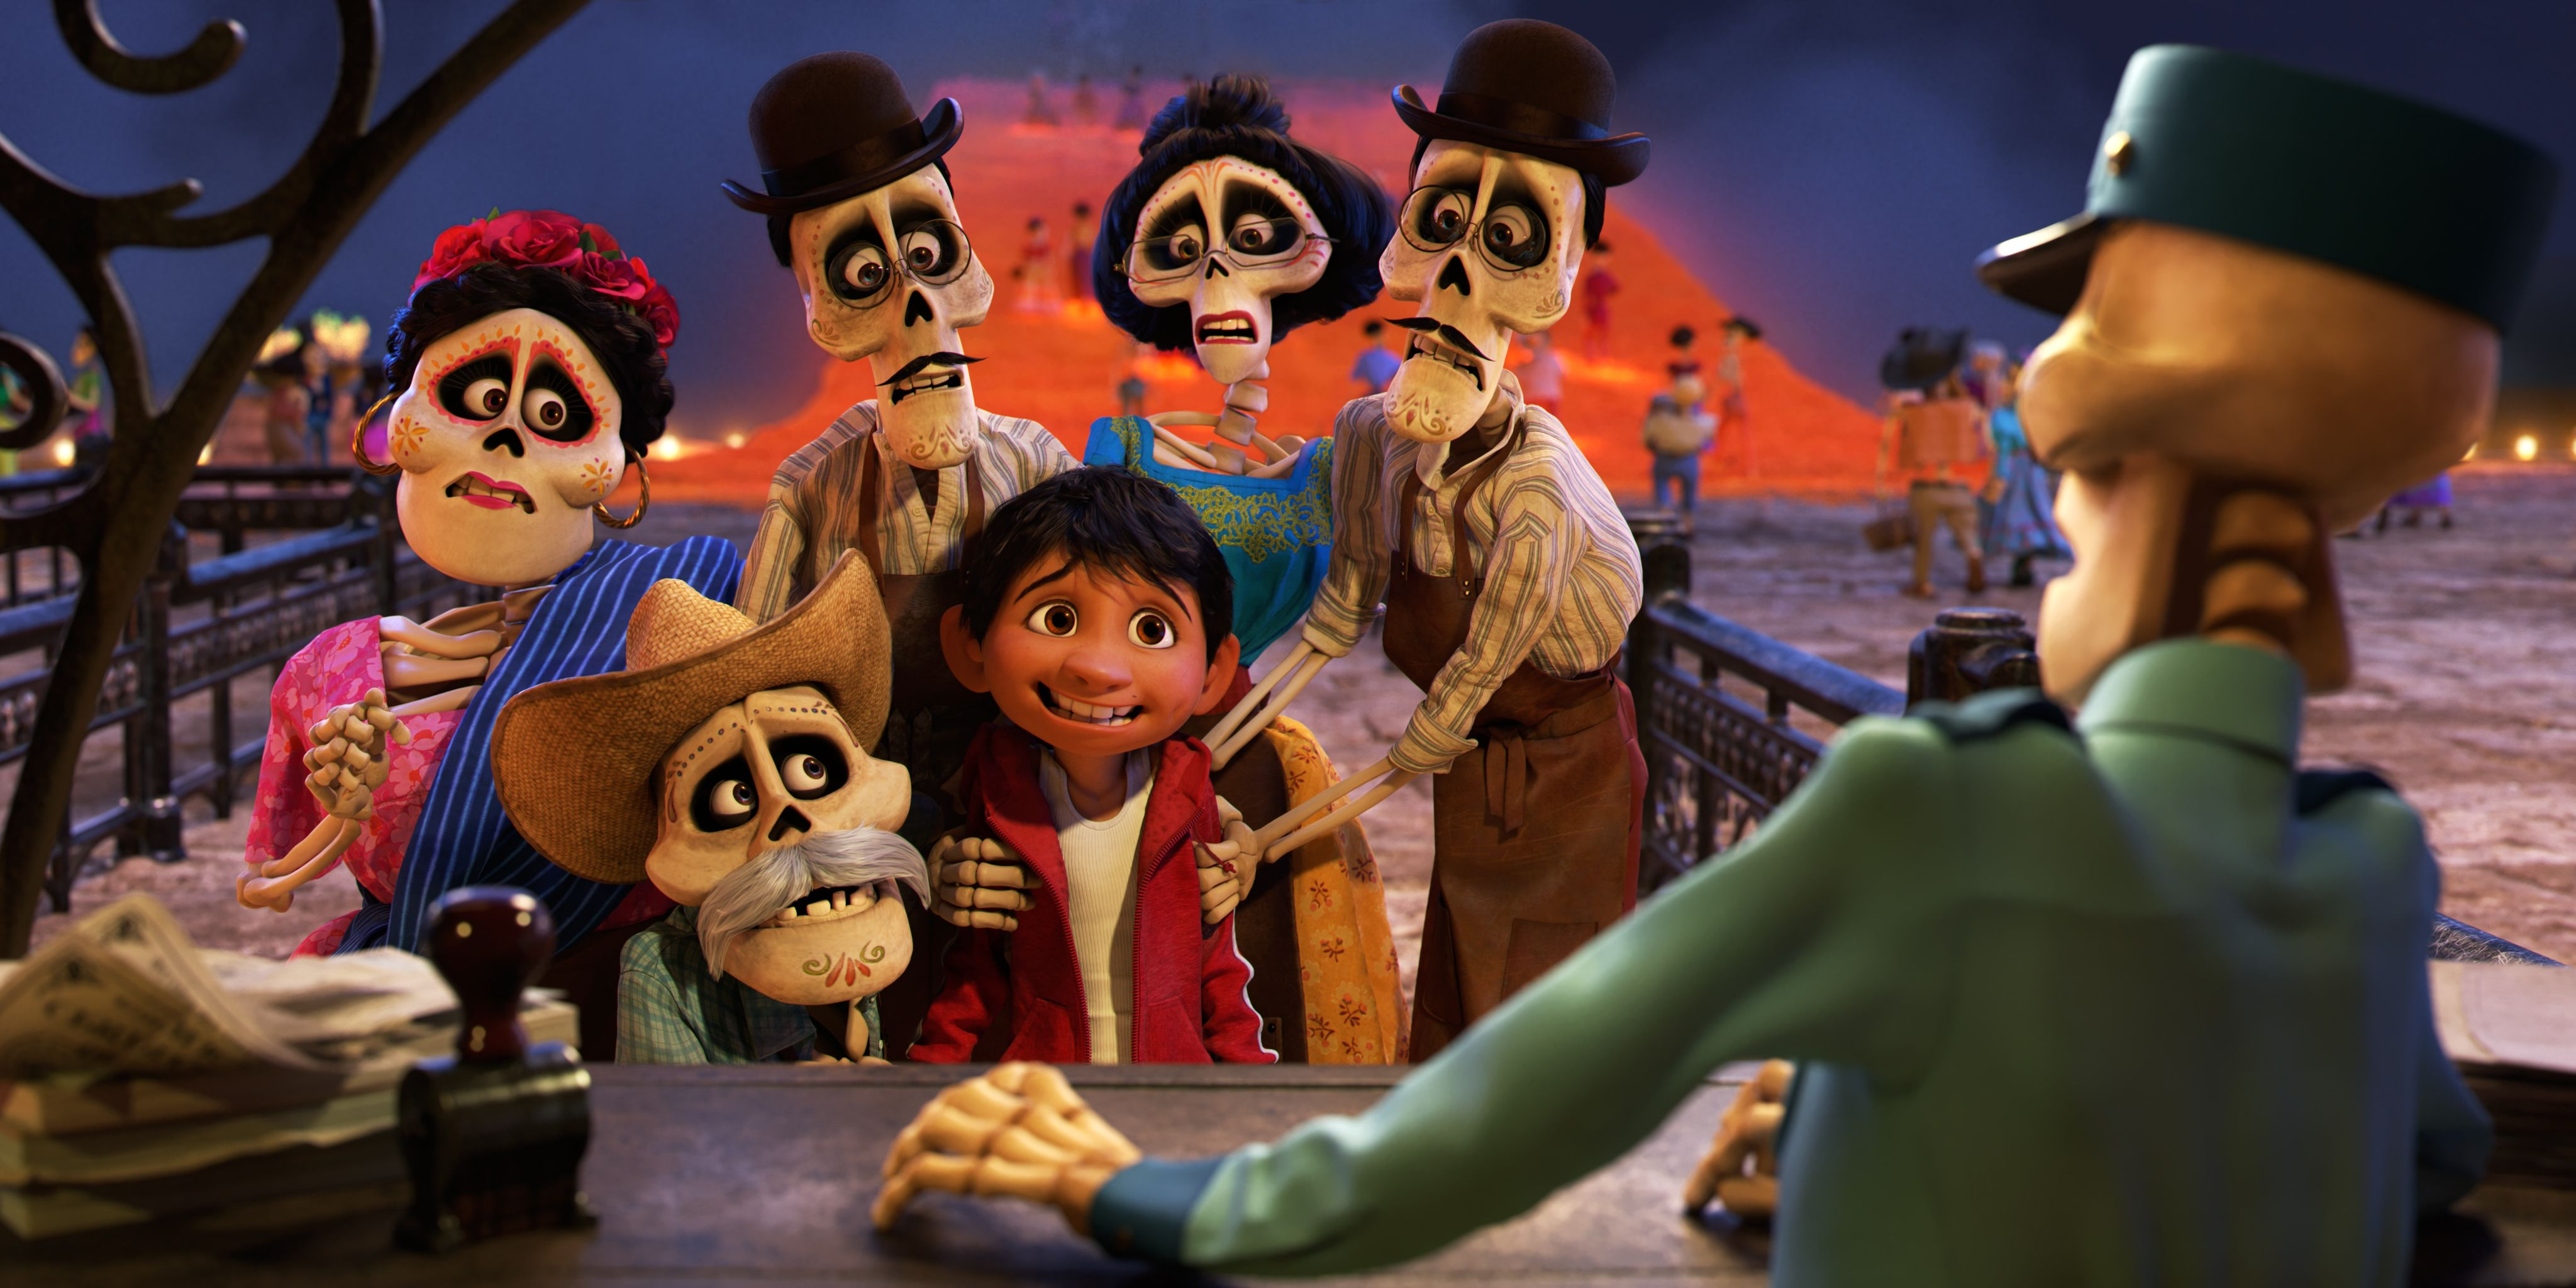 Coco Review Yet Another Pixar Movie To Make You Cry Collider - Heres how pixar copy scenes from other movies